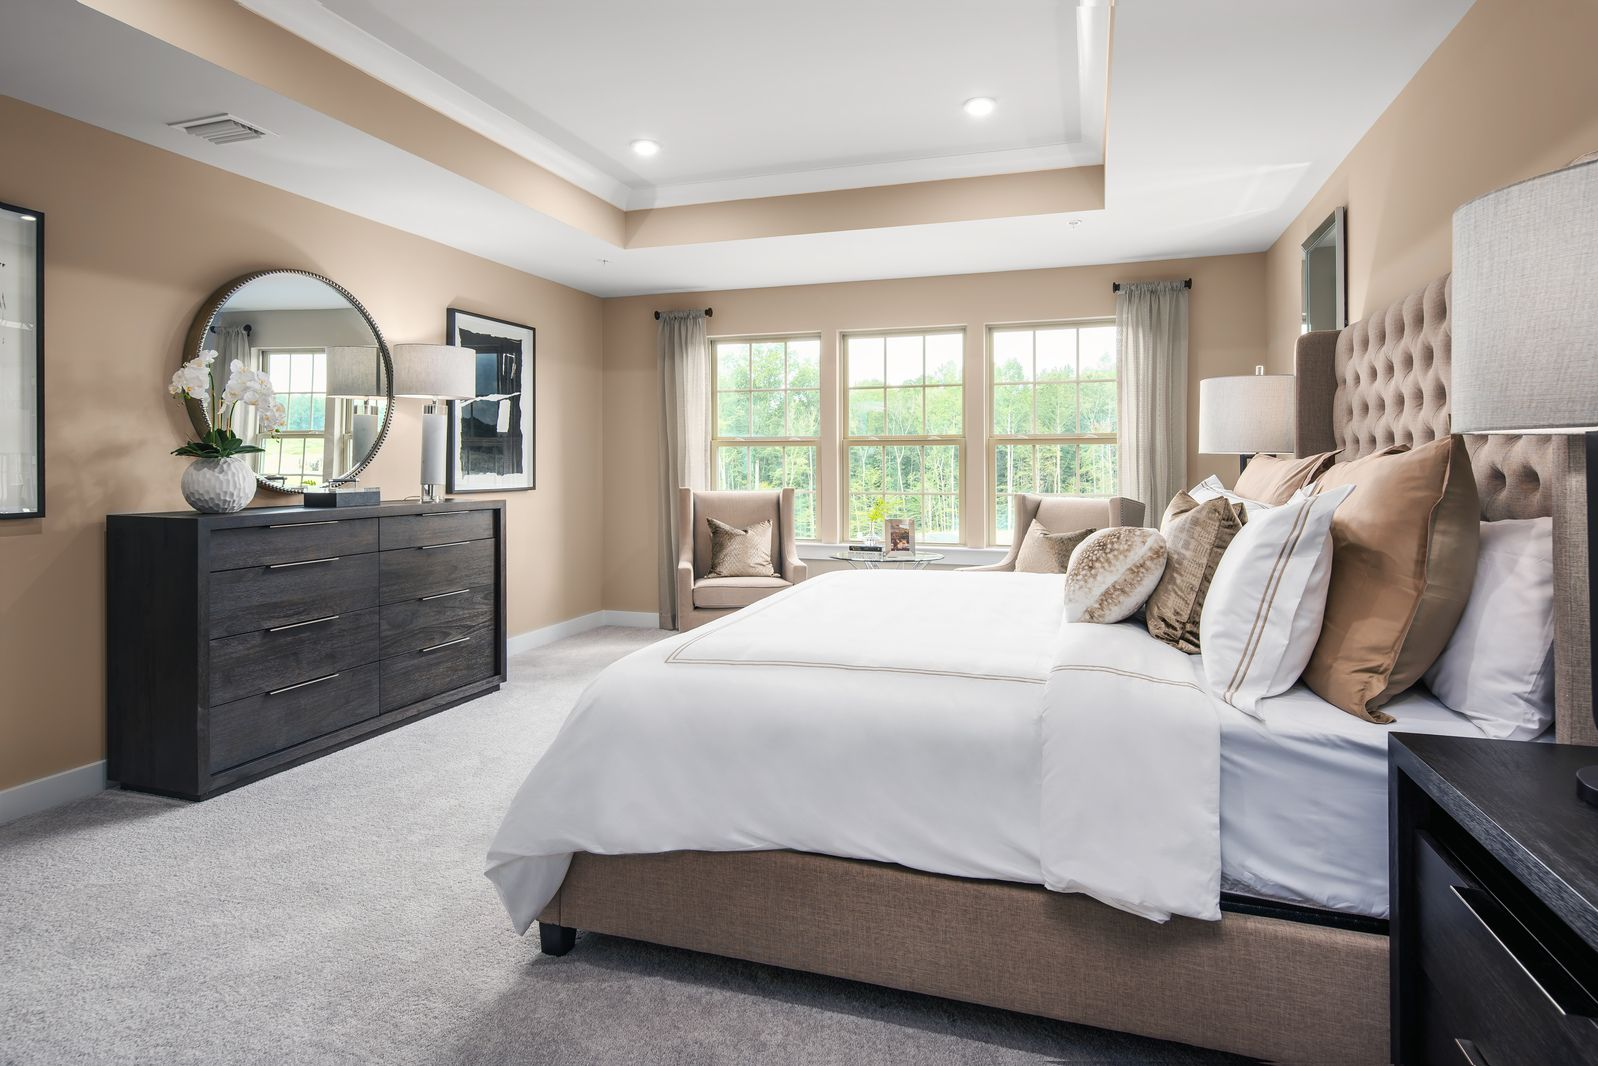 Bedroom featured in the Powell By Ryan Homes in Ocean City, MD